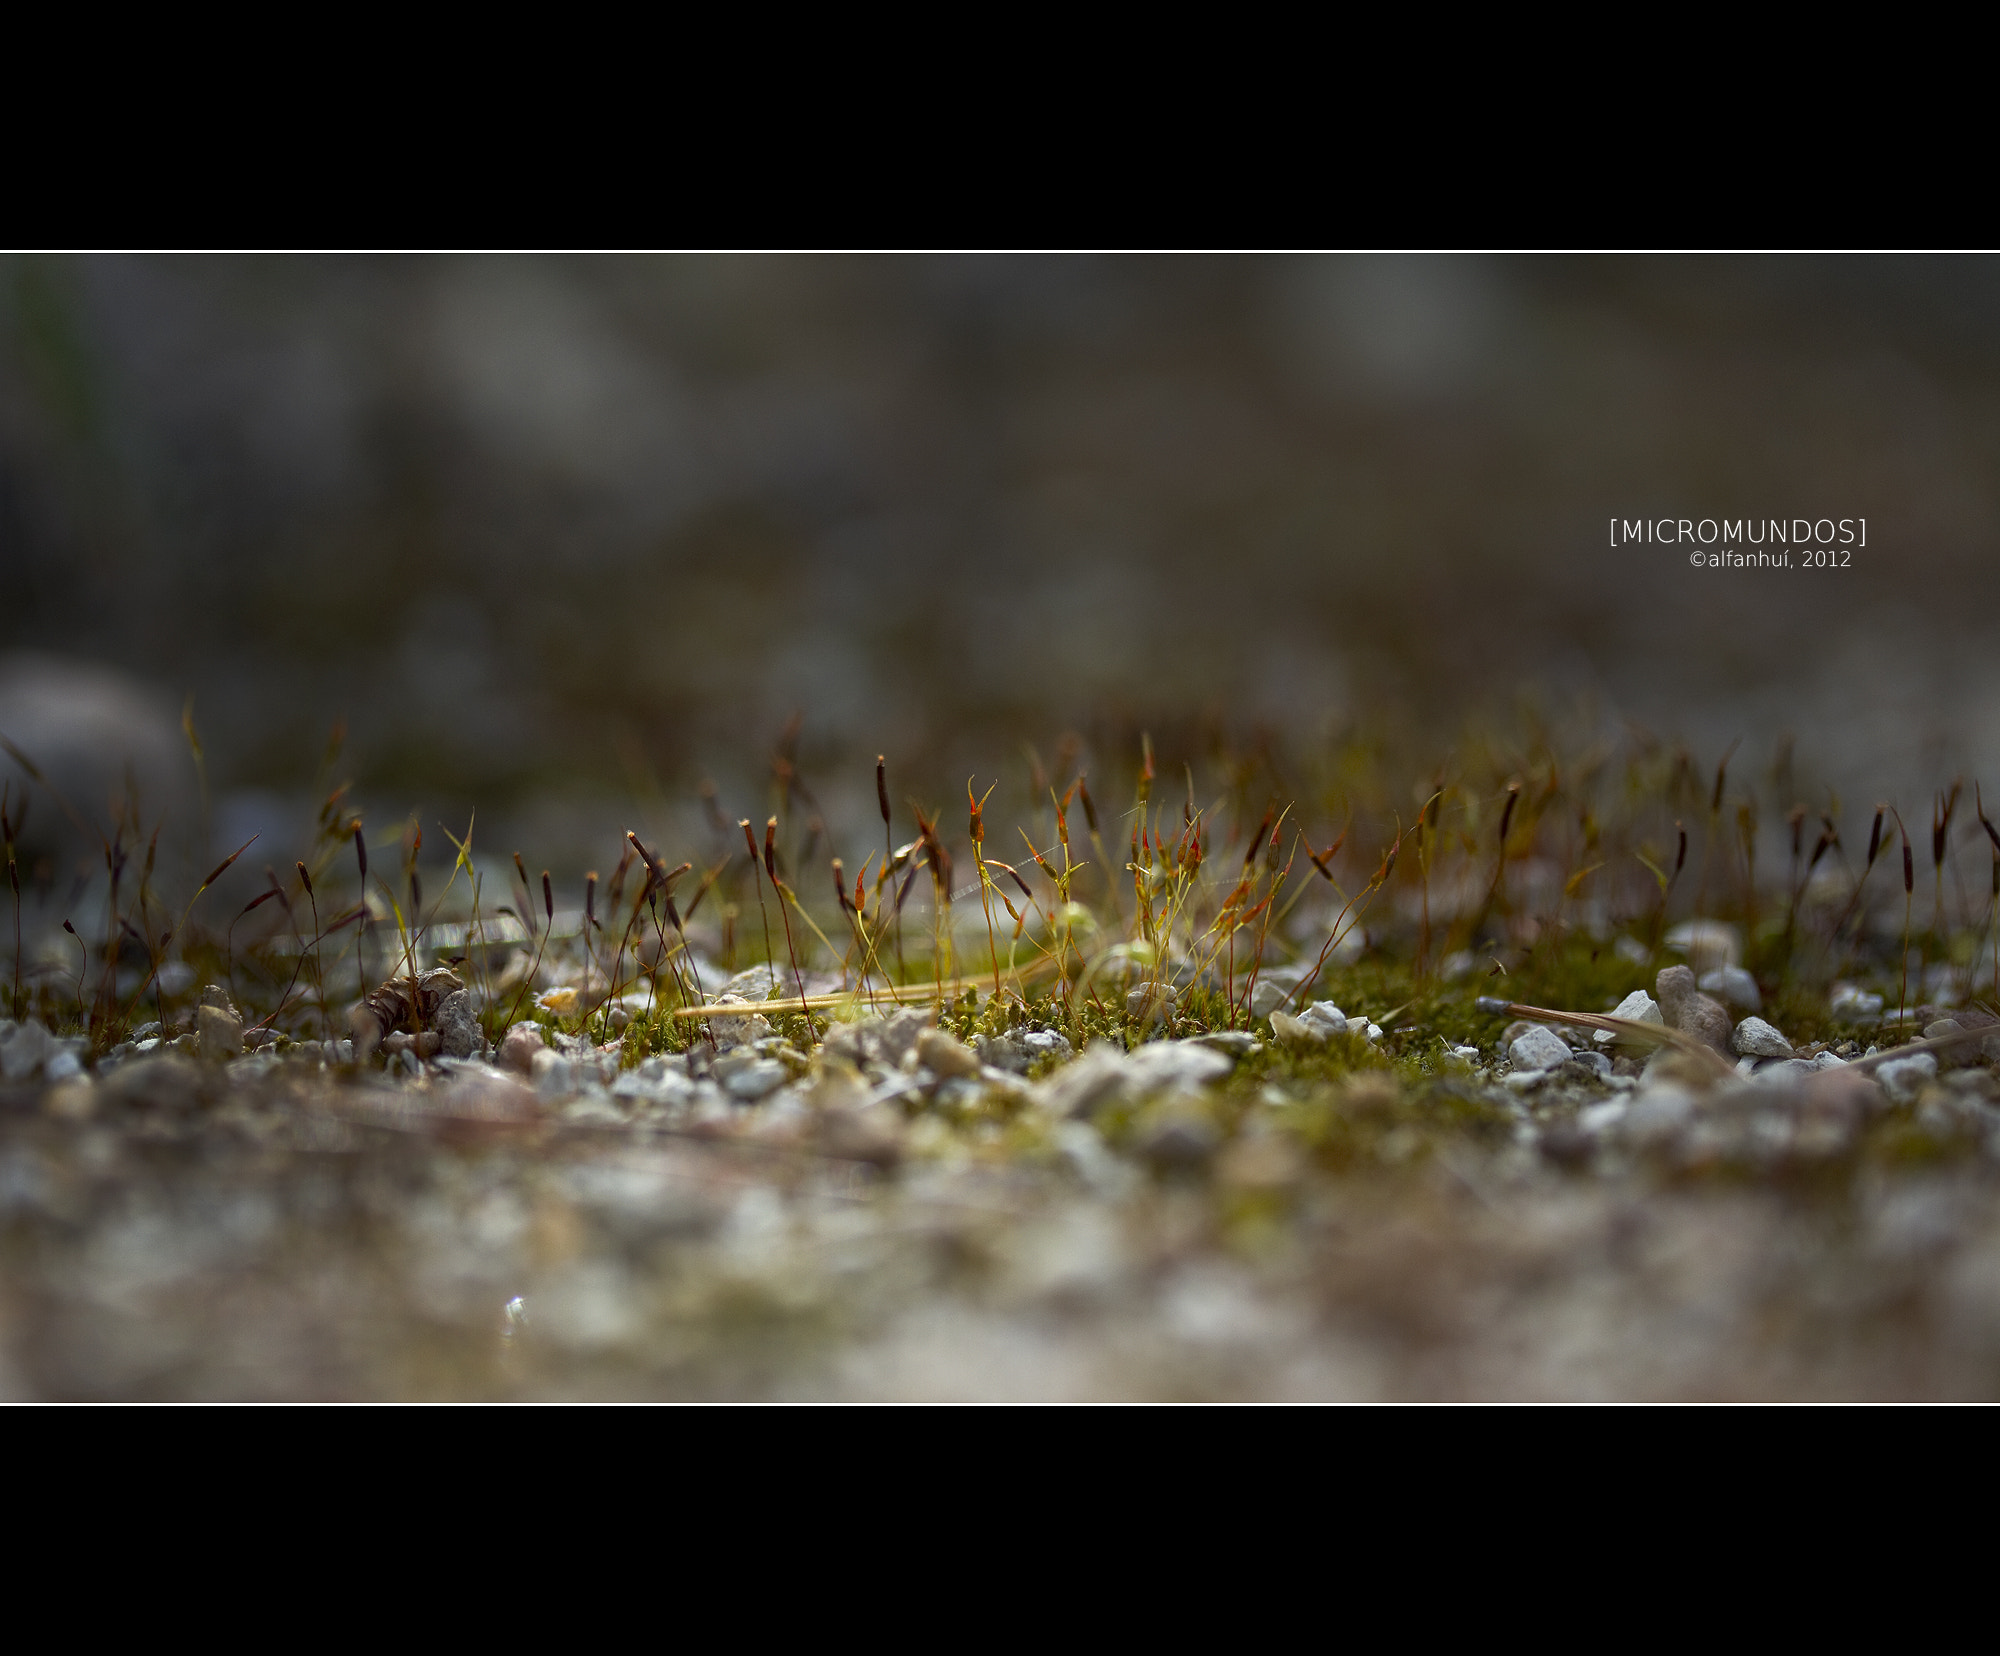 Photograph Microworlds by alfanhuí . on 500px